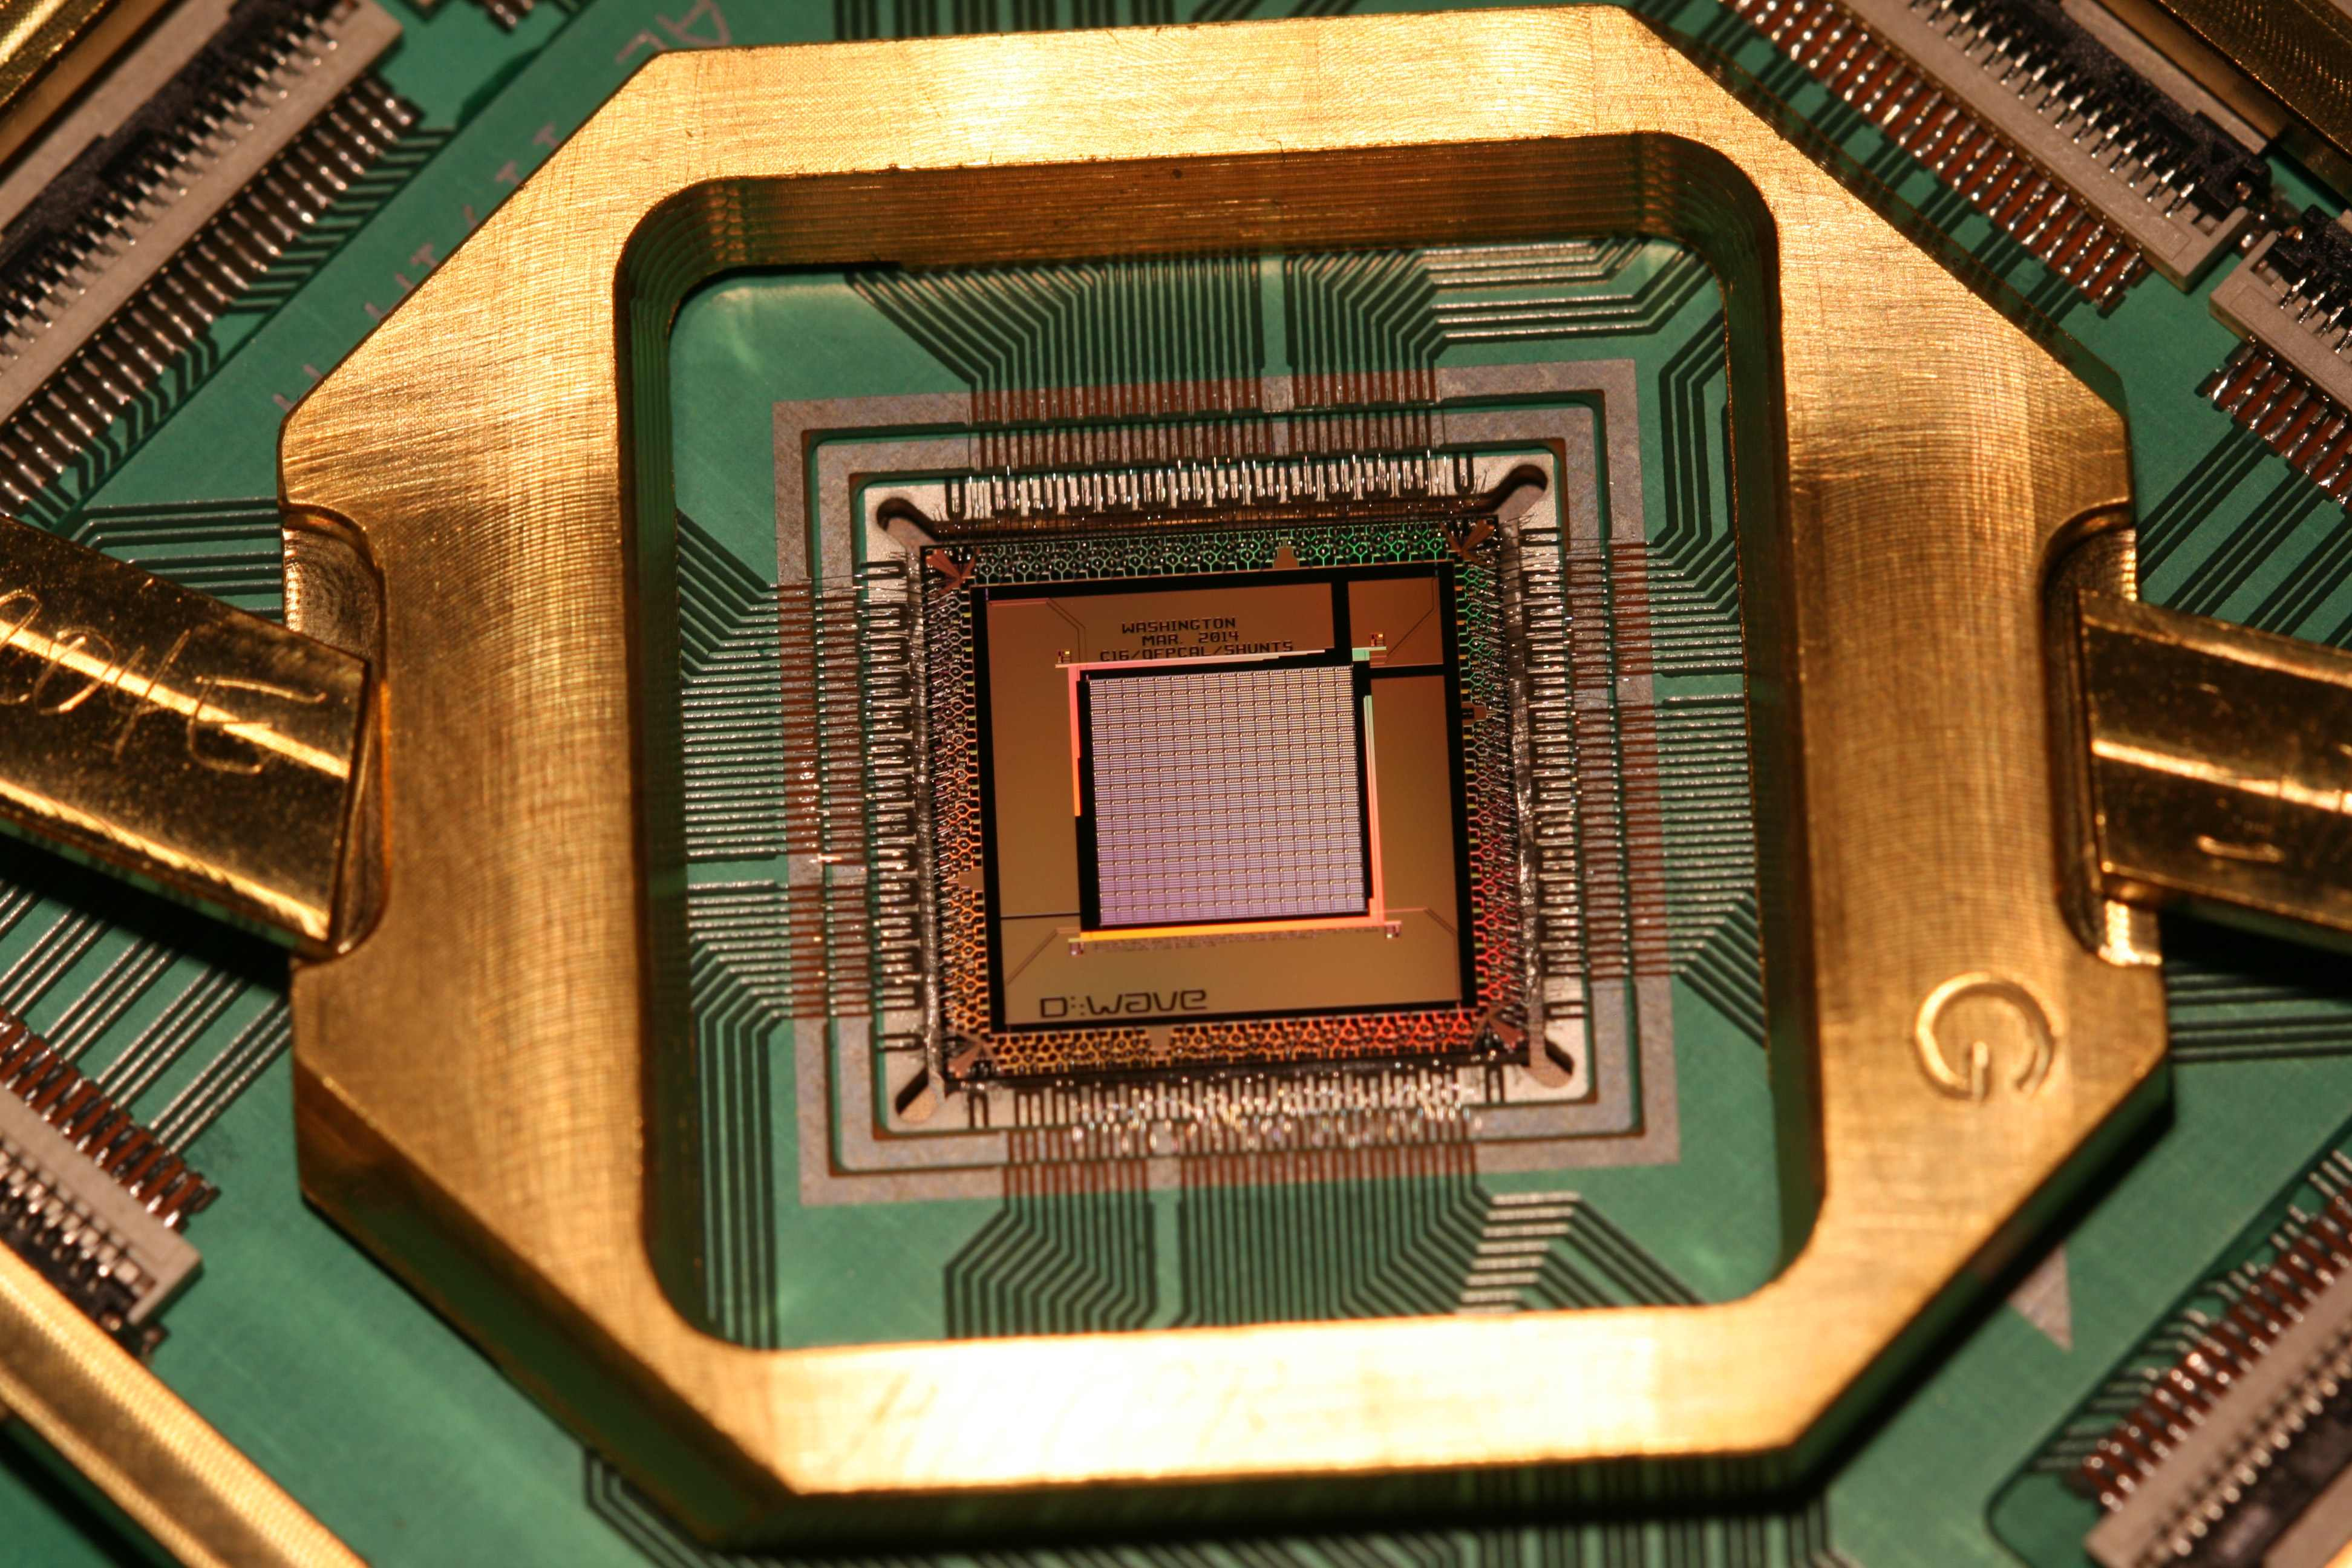 D-Wave is trying to bring quantum computing out of the research lab. This is one of its chips.